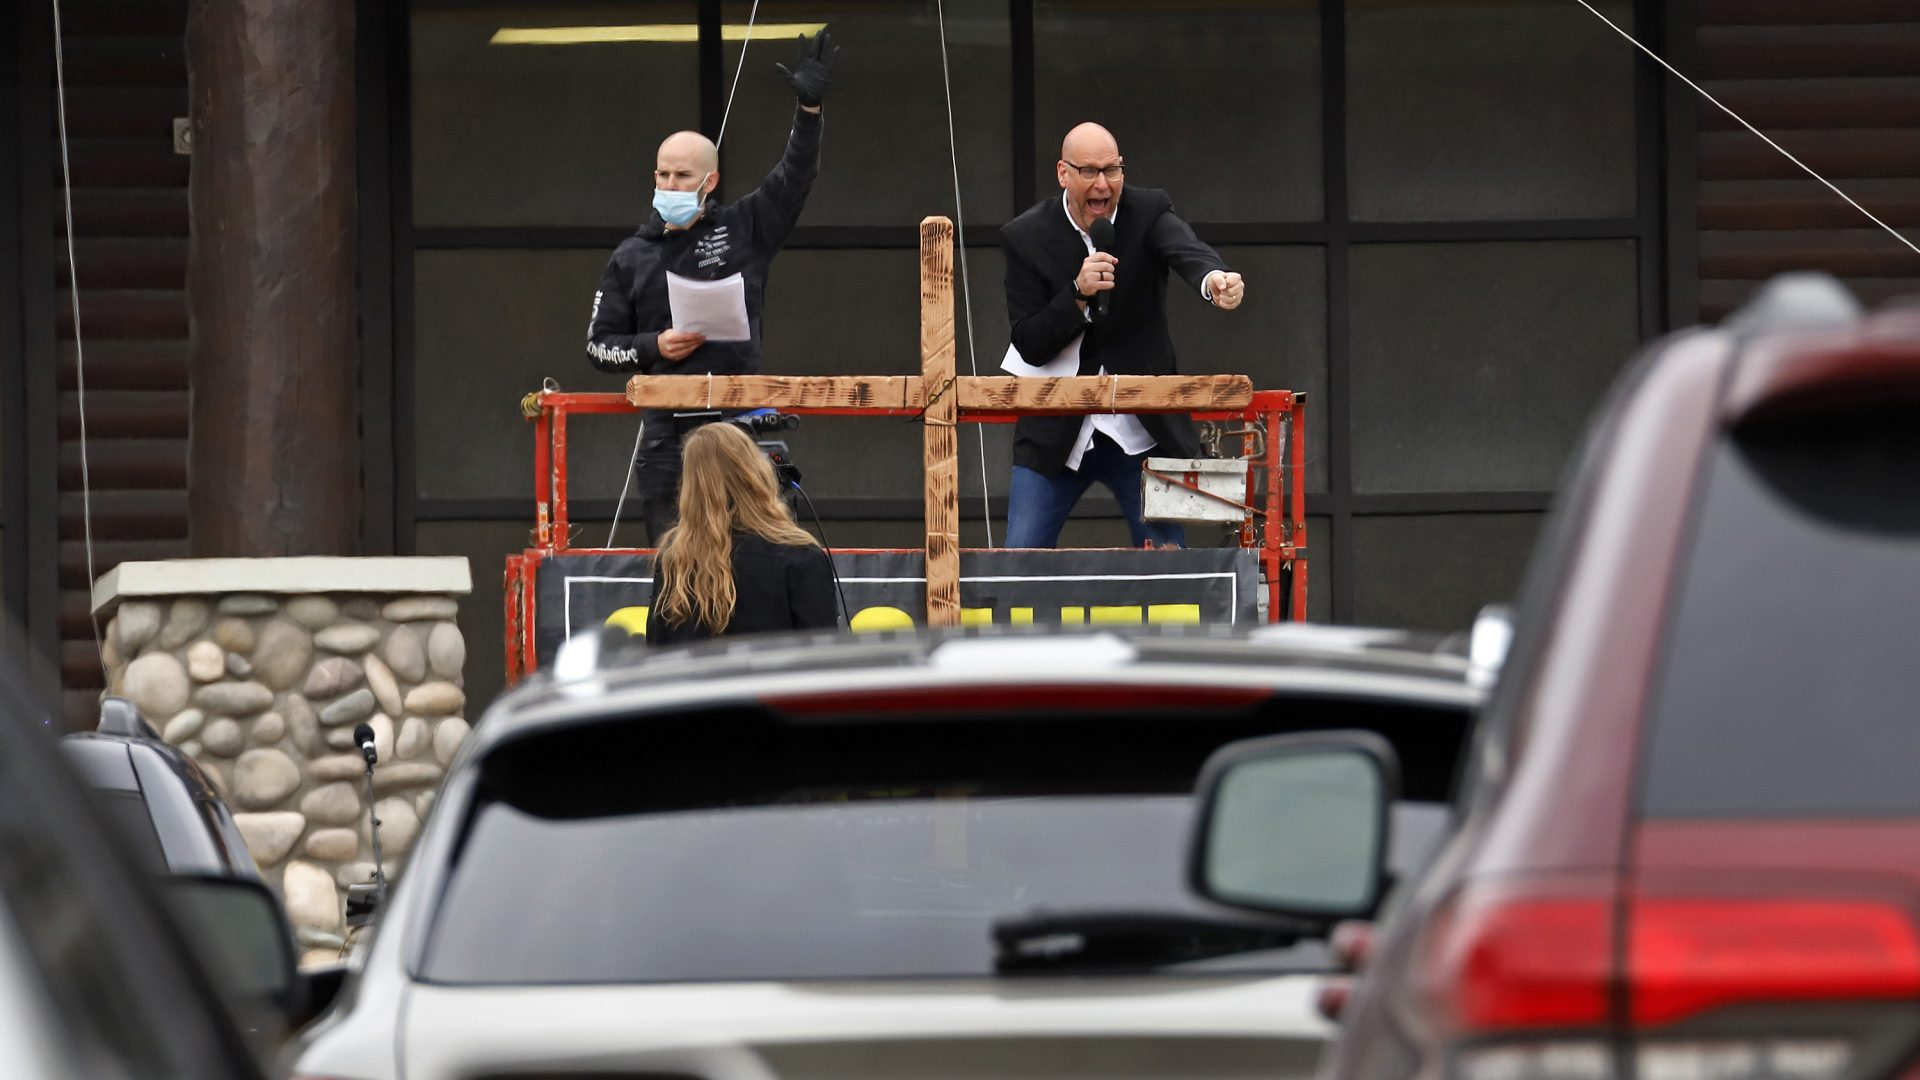 Pastor Bruce Schafer, top right, preaches from a scissor lift during the first of two drive-in Easter services held by Grace Life Church in a parking lot in Monroeville, Pa., Sunday, April 12, 2020.